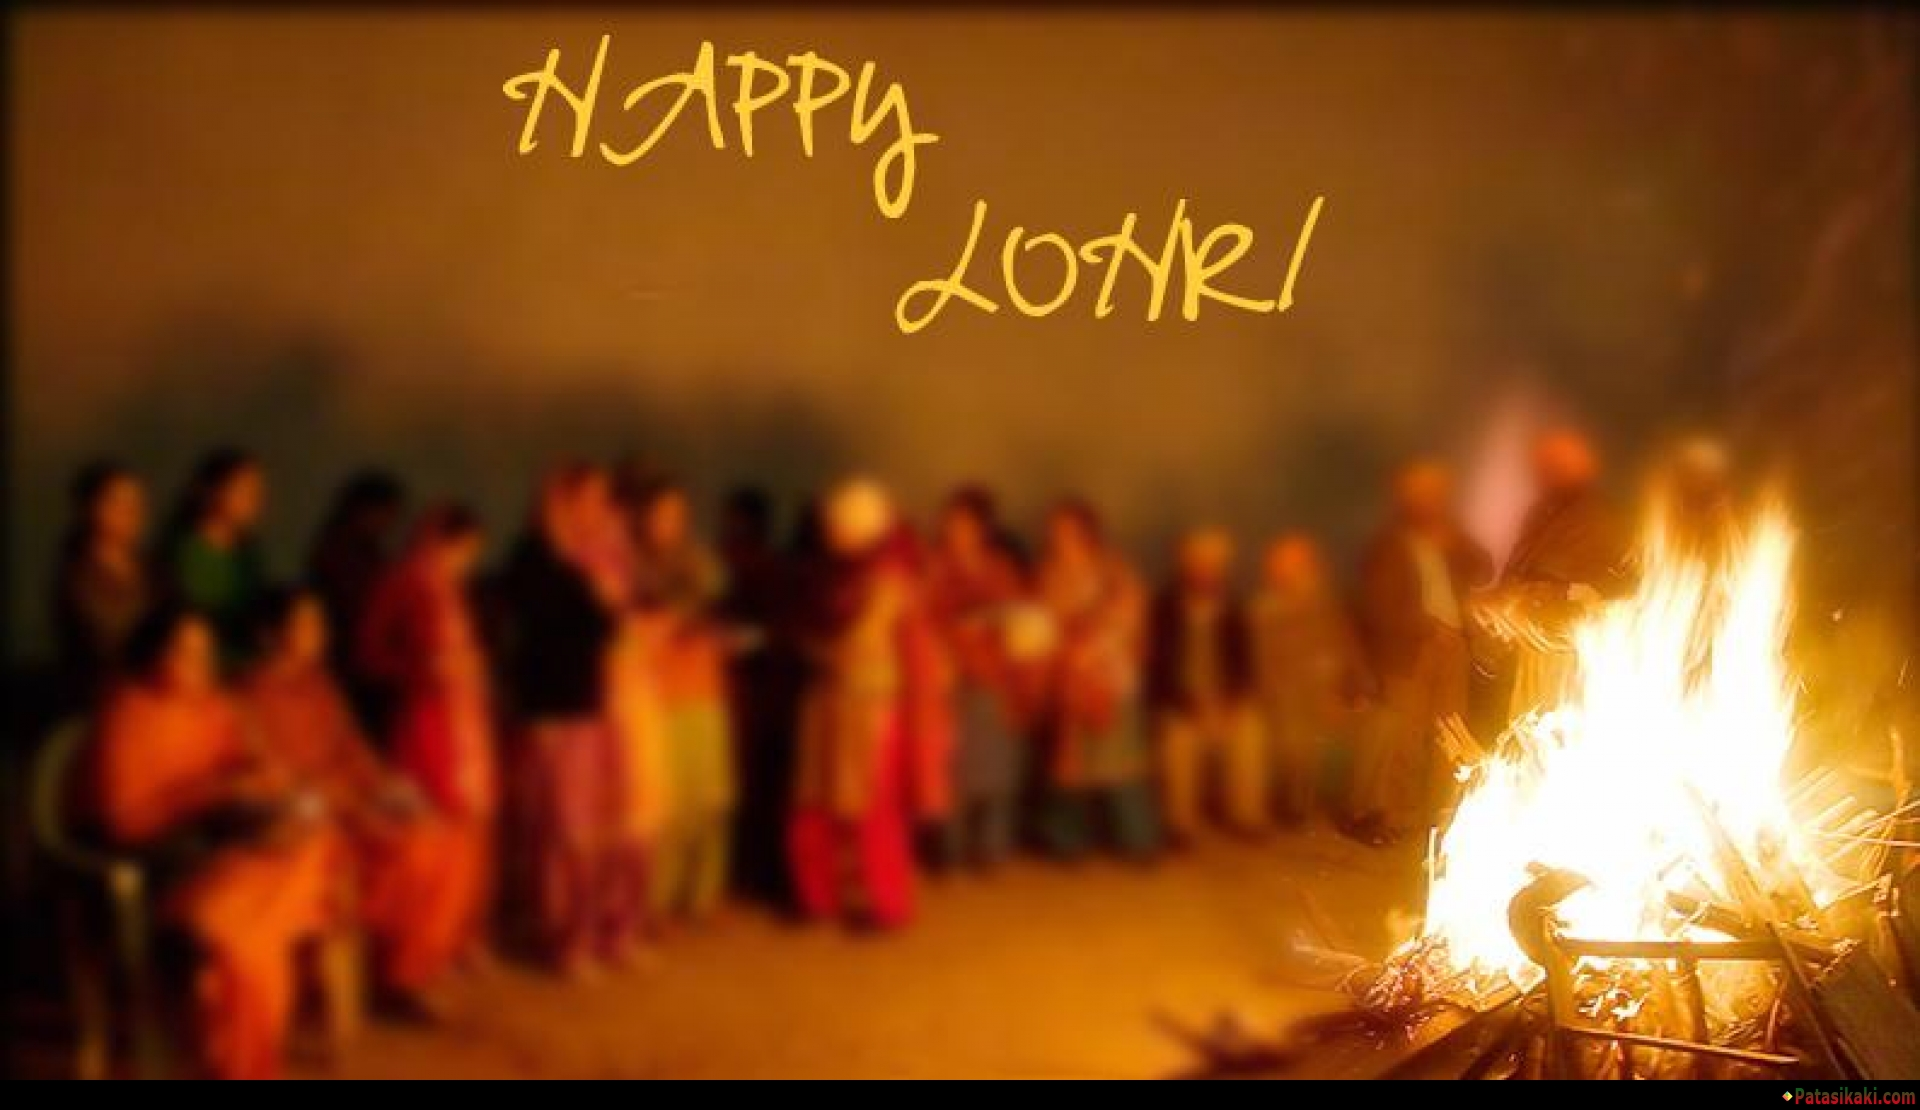 Best Happy Lohri Images High Resolution